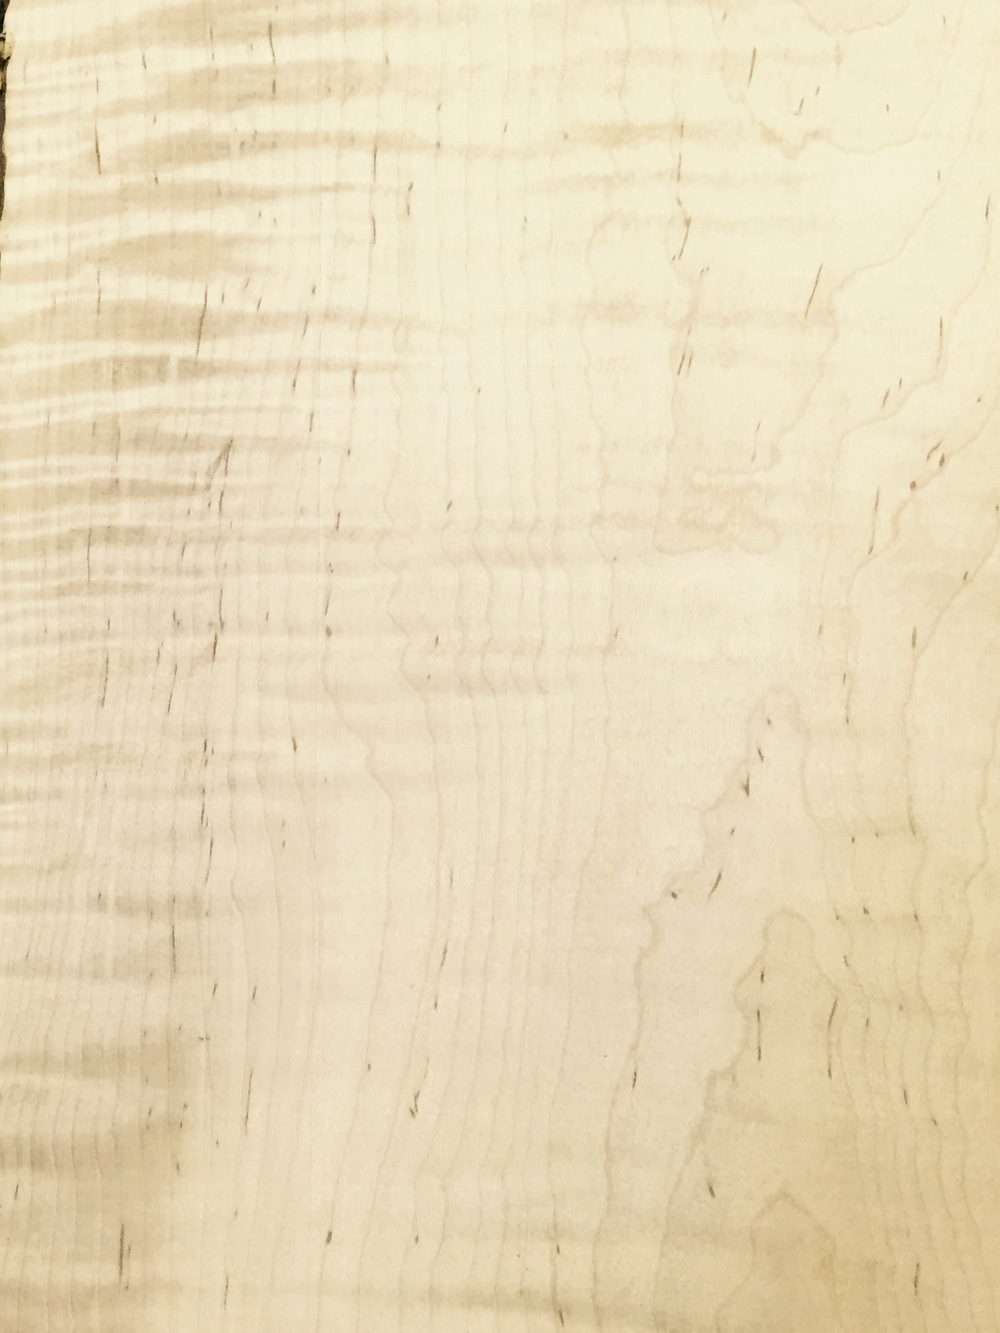 4/4 Curly Maple $5.95 / BF